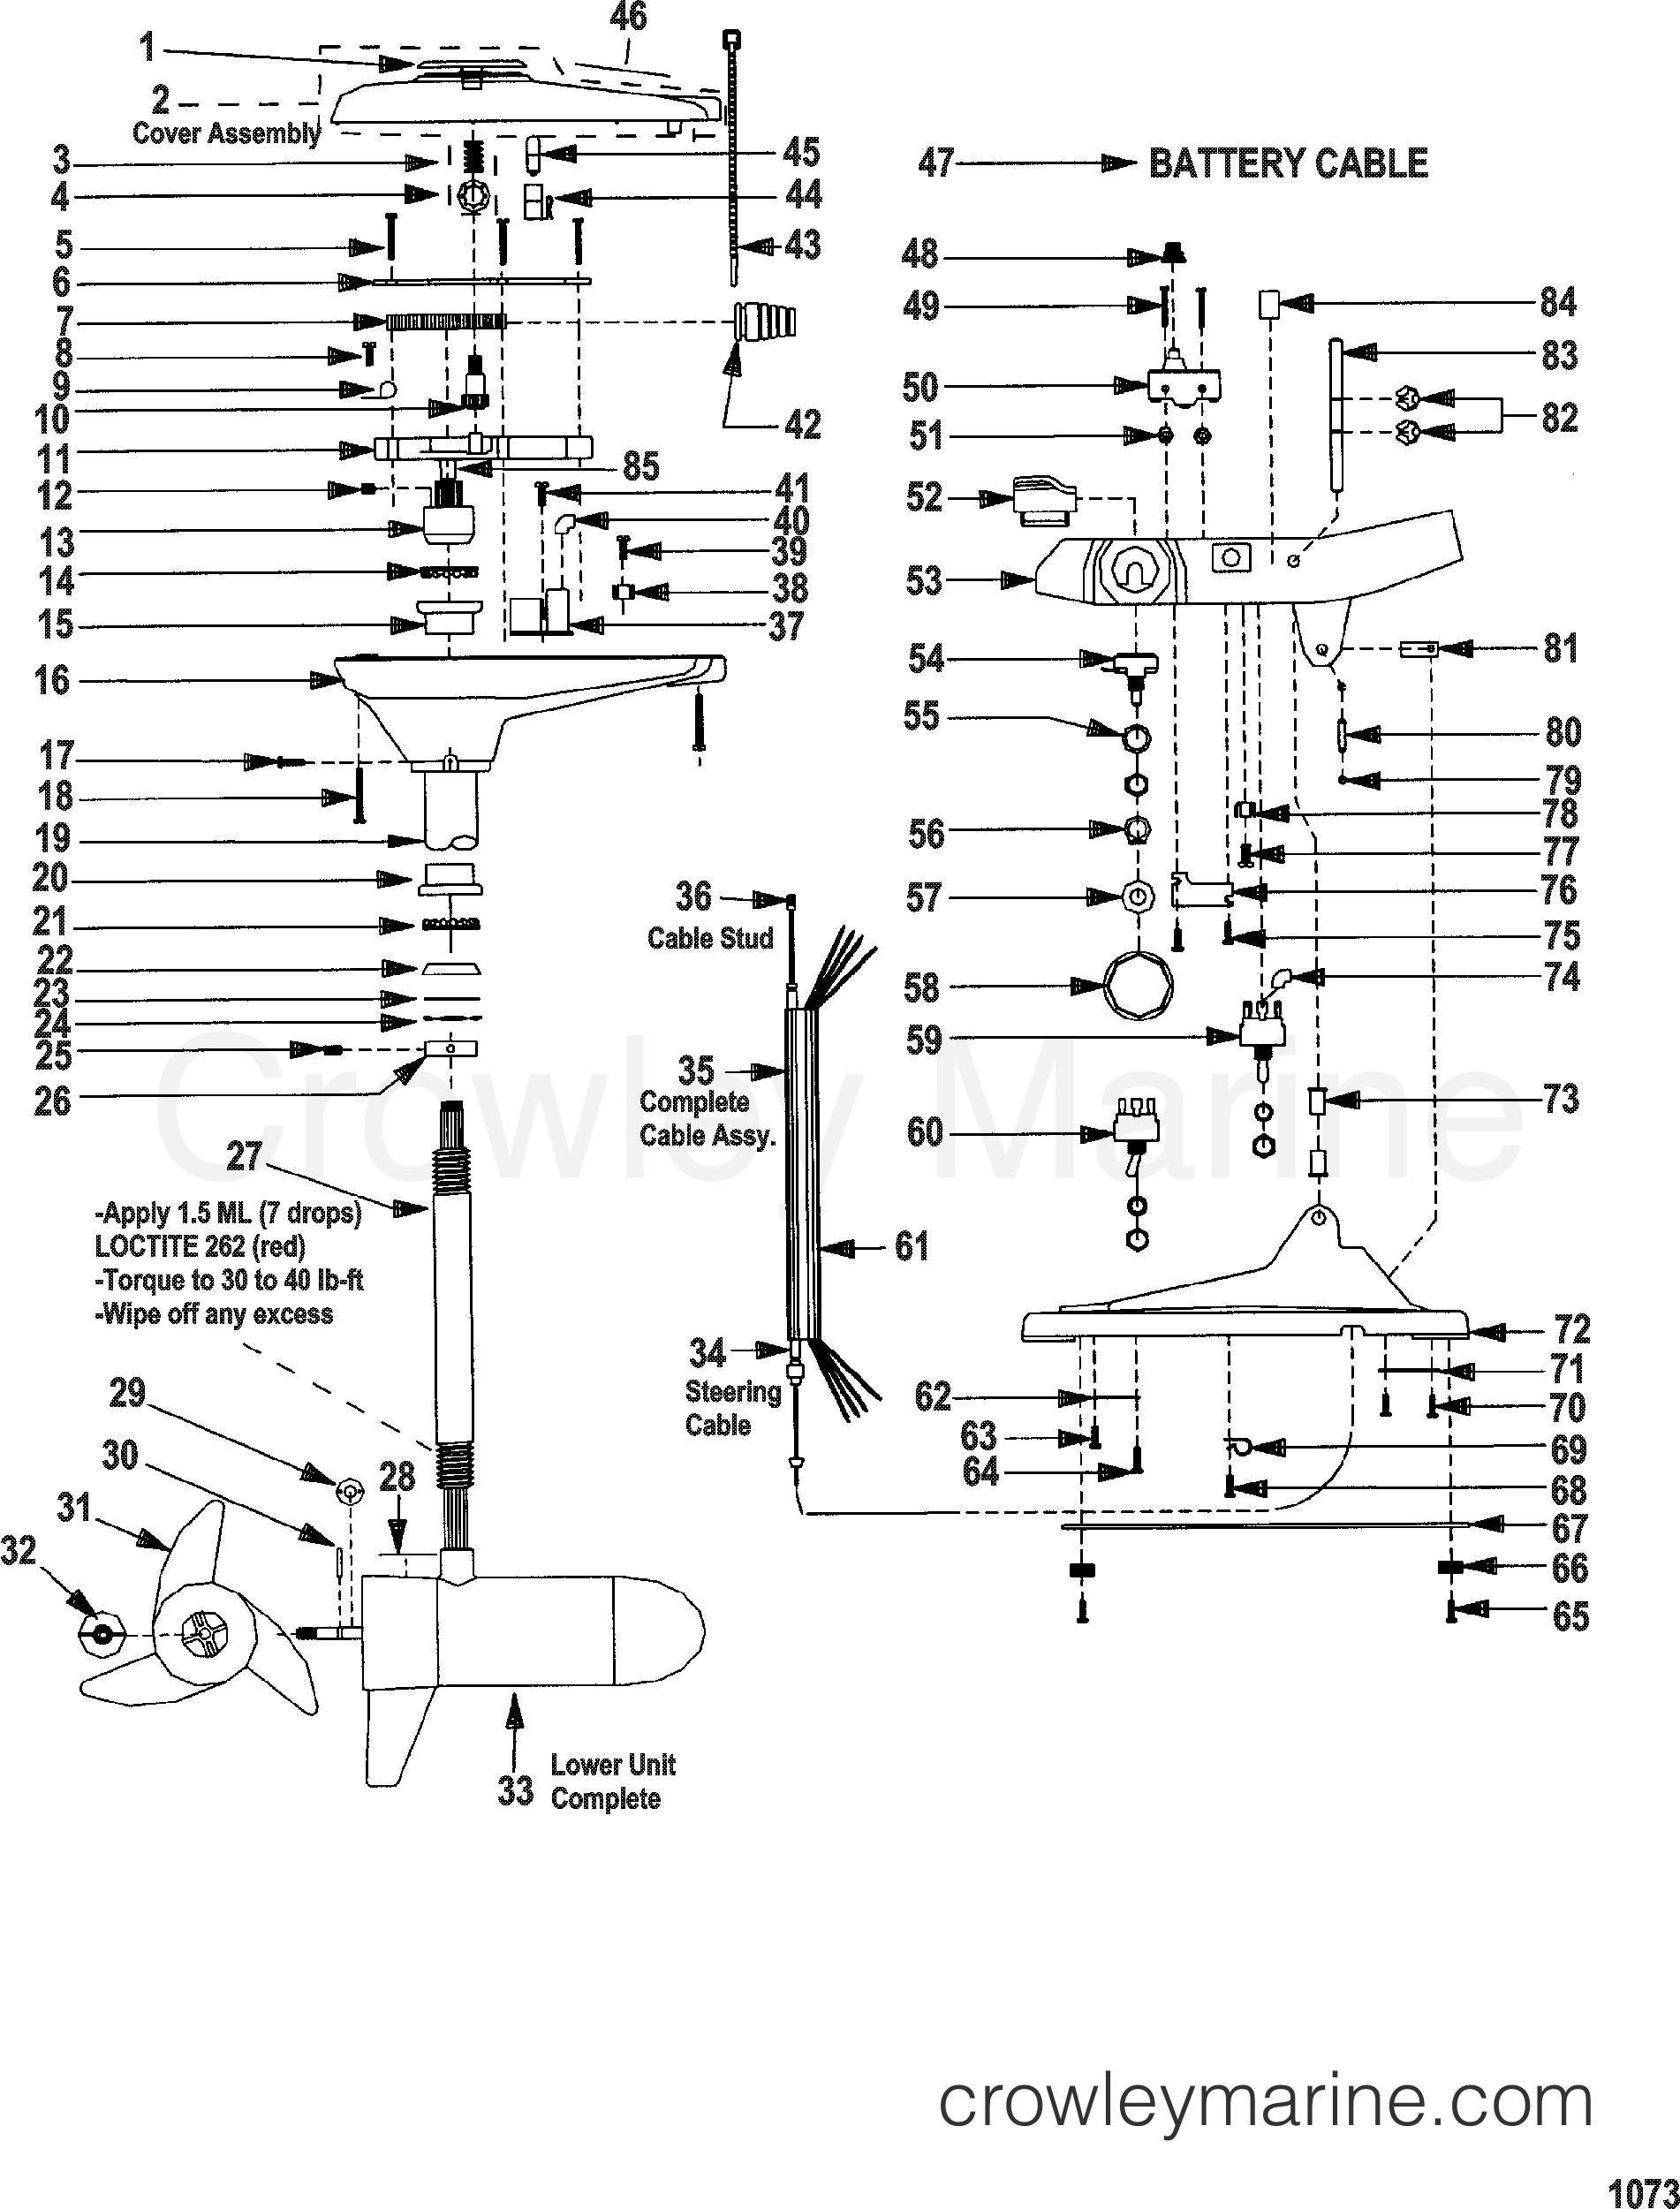 International Dt466 Engine Diagram Wiring Diagram Fo Wiring Diagram for  Dummies Wiring Diagrams Of International Dt466